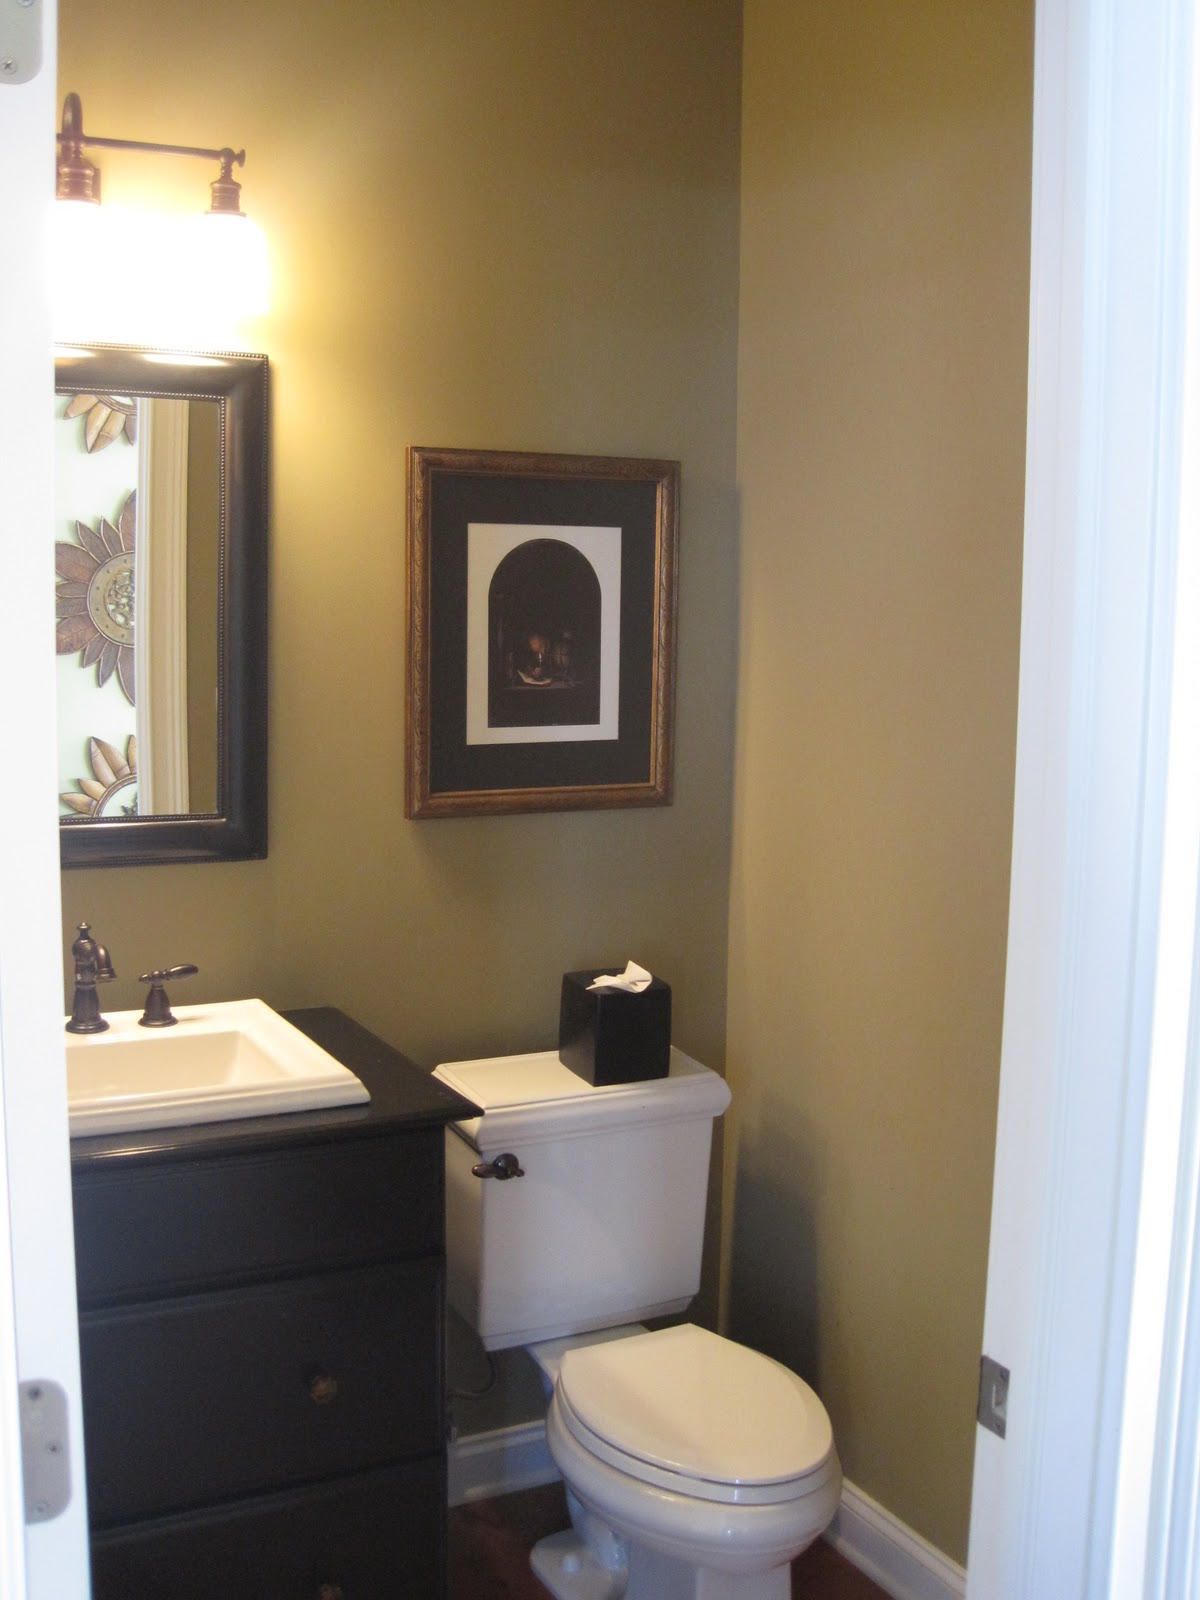 Maura 39 s decorating blog powder room - Small powder room designs ...